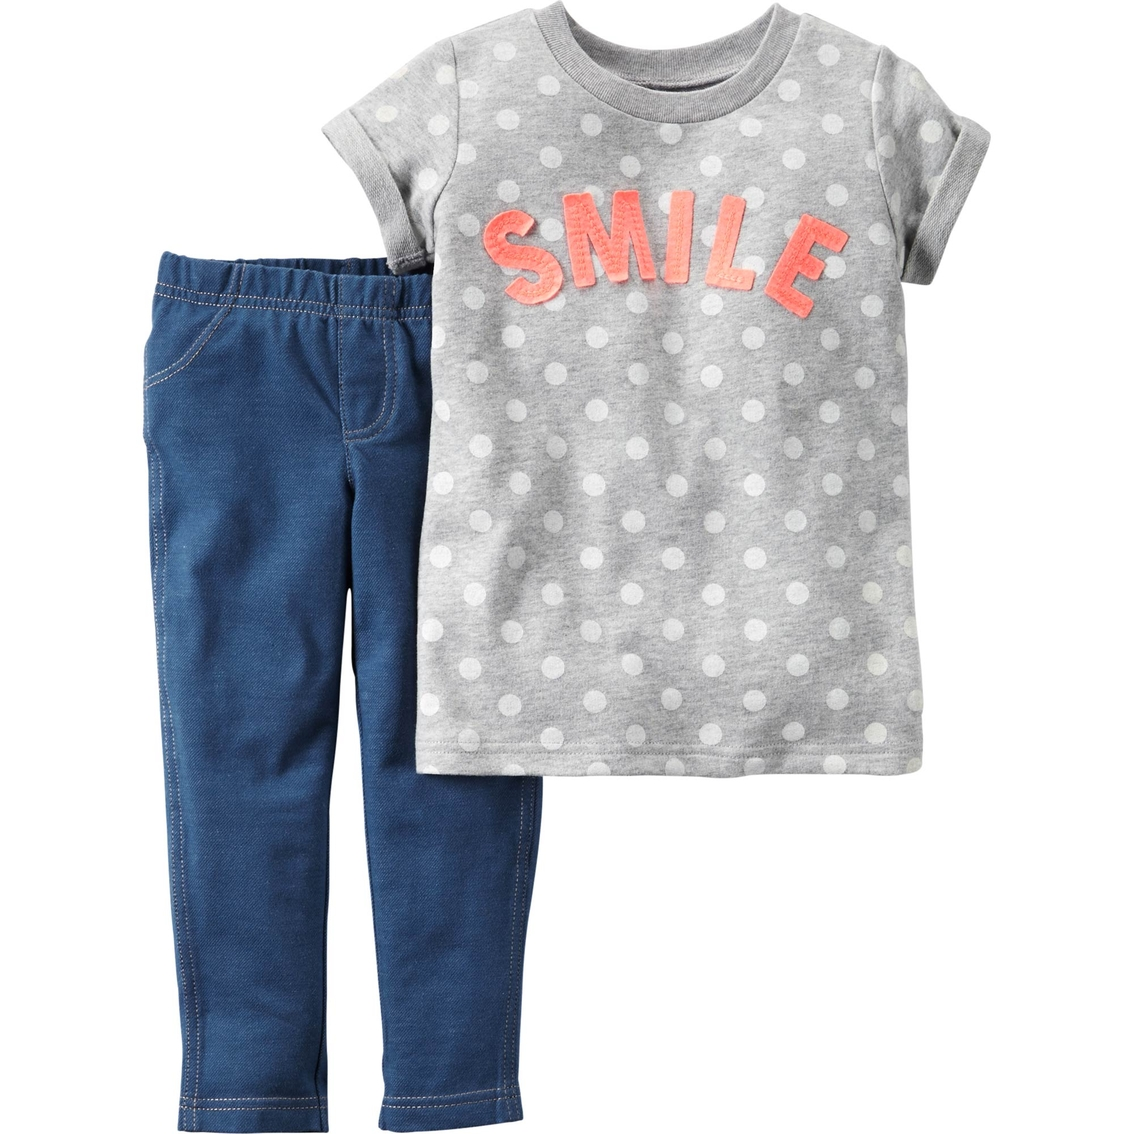 eb7295e7a69d1 Carter's Toddler Girls French Terry Top & Jeggings 2 Pc. Set ...